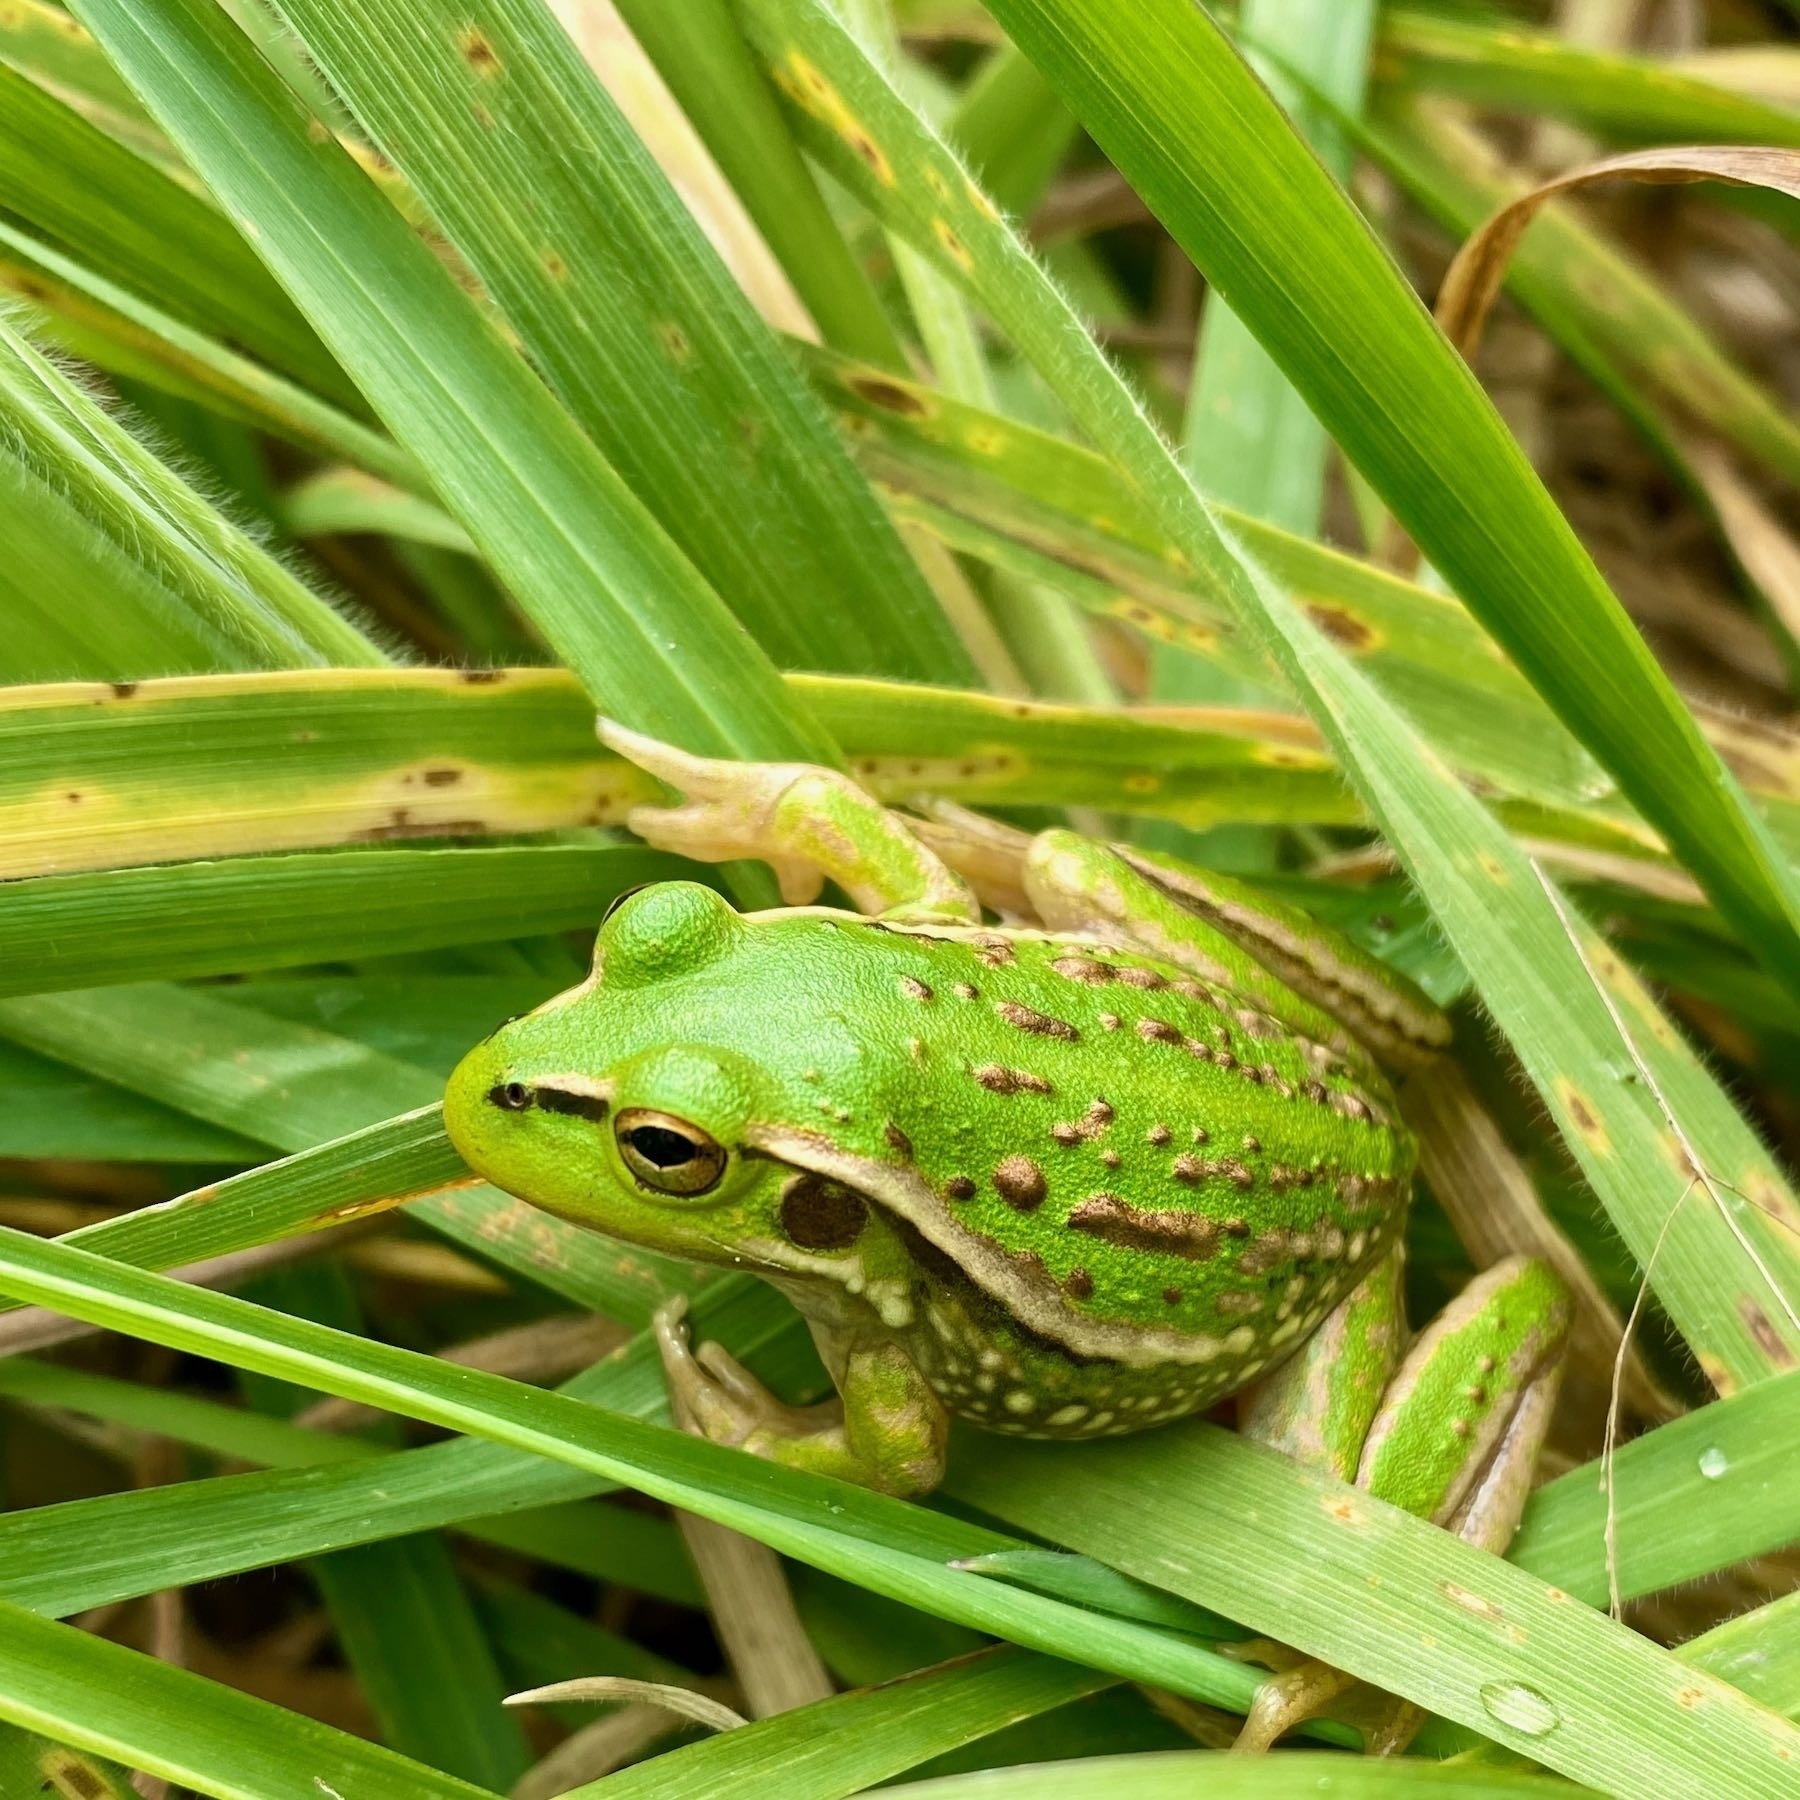 Small bright green frog with golden stripes and bumps, on grass.